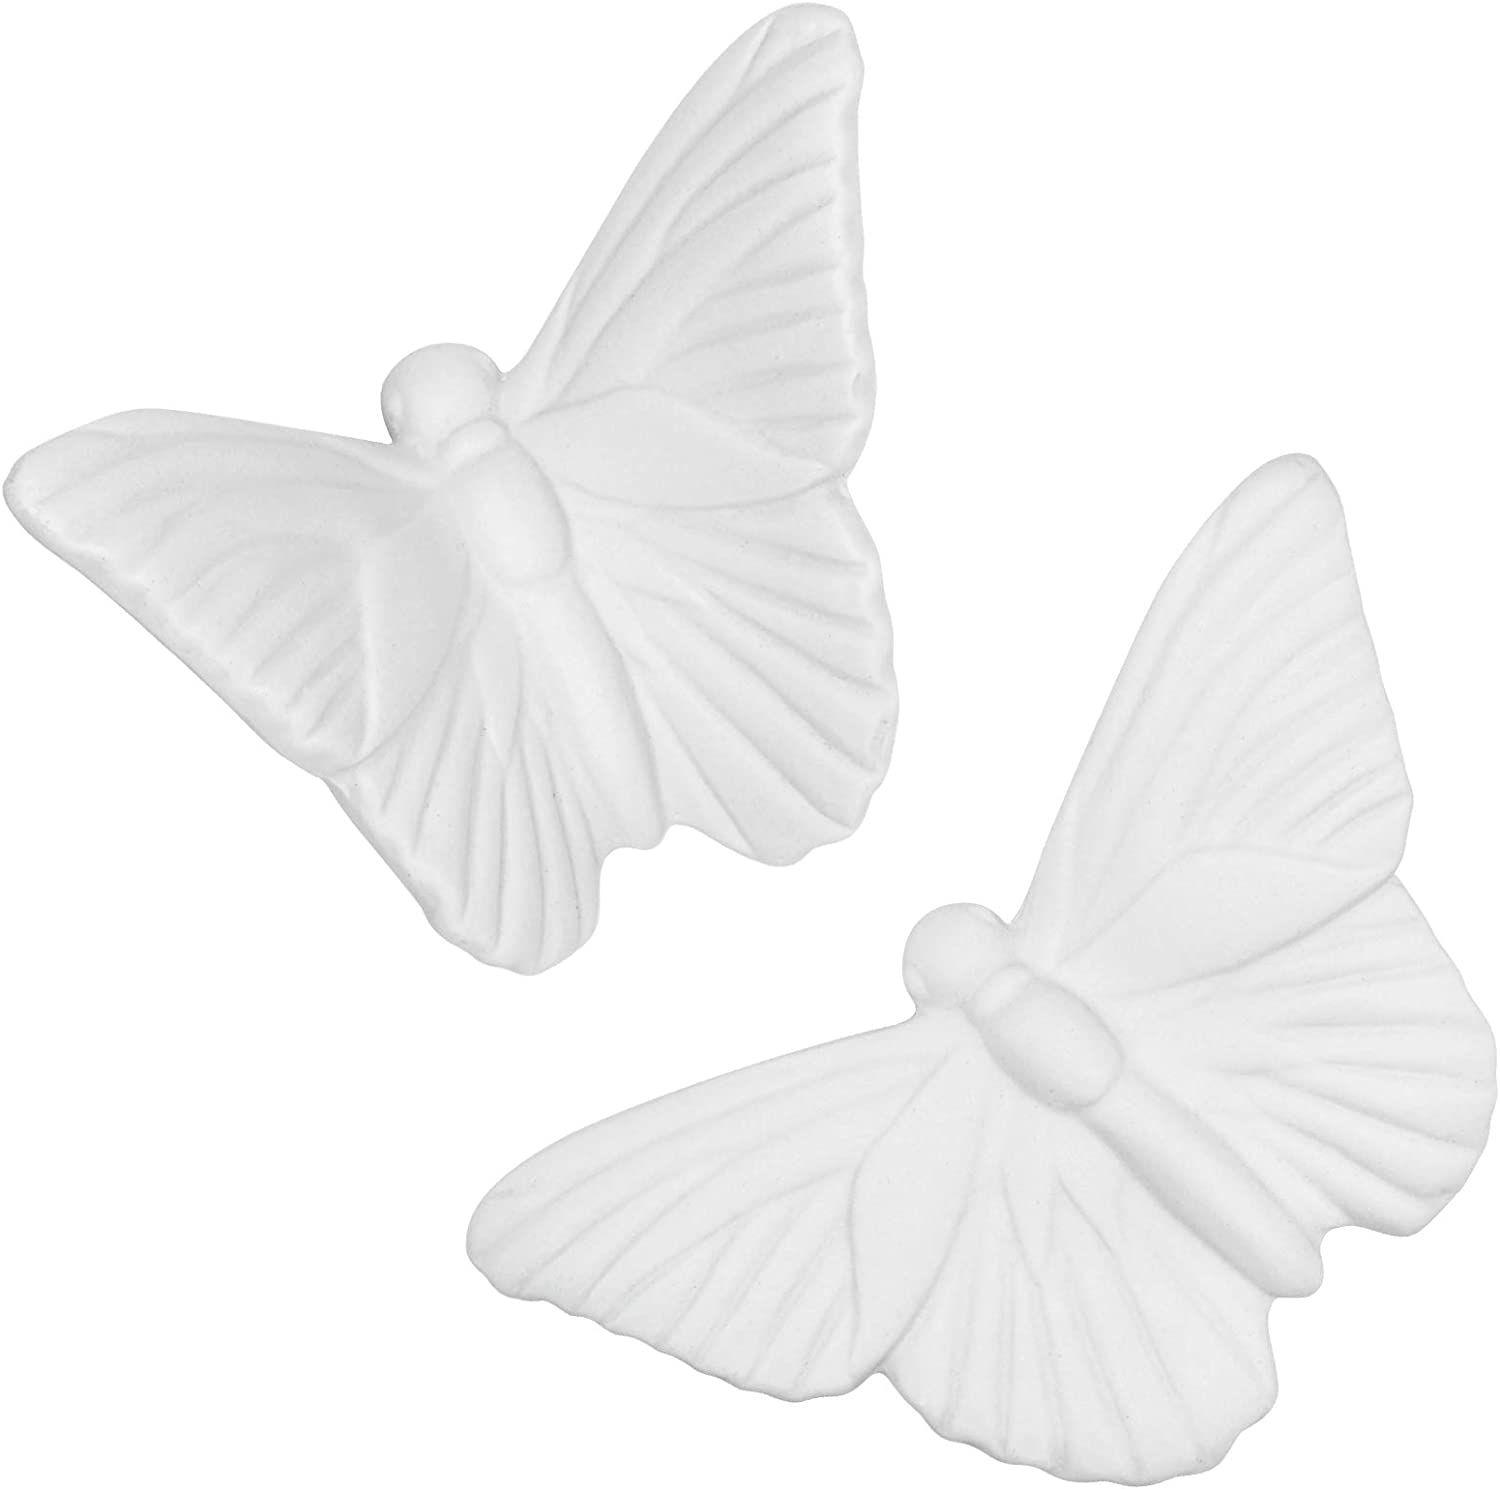 Dorlotou Ceramic Butterfly White Wall Decor Hanging Gift for Home Livingroom Garden Wall Sculptures,One Pair Large